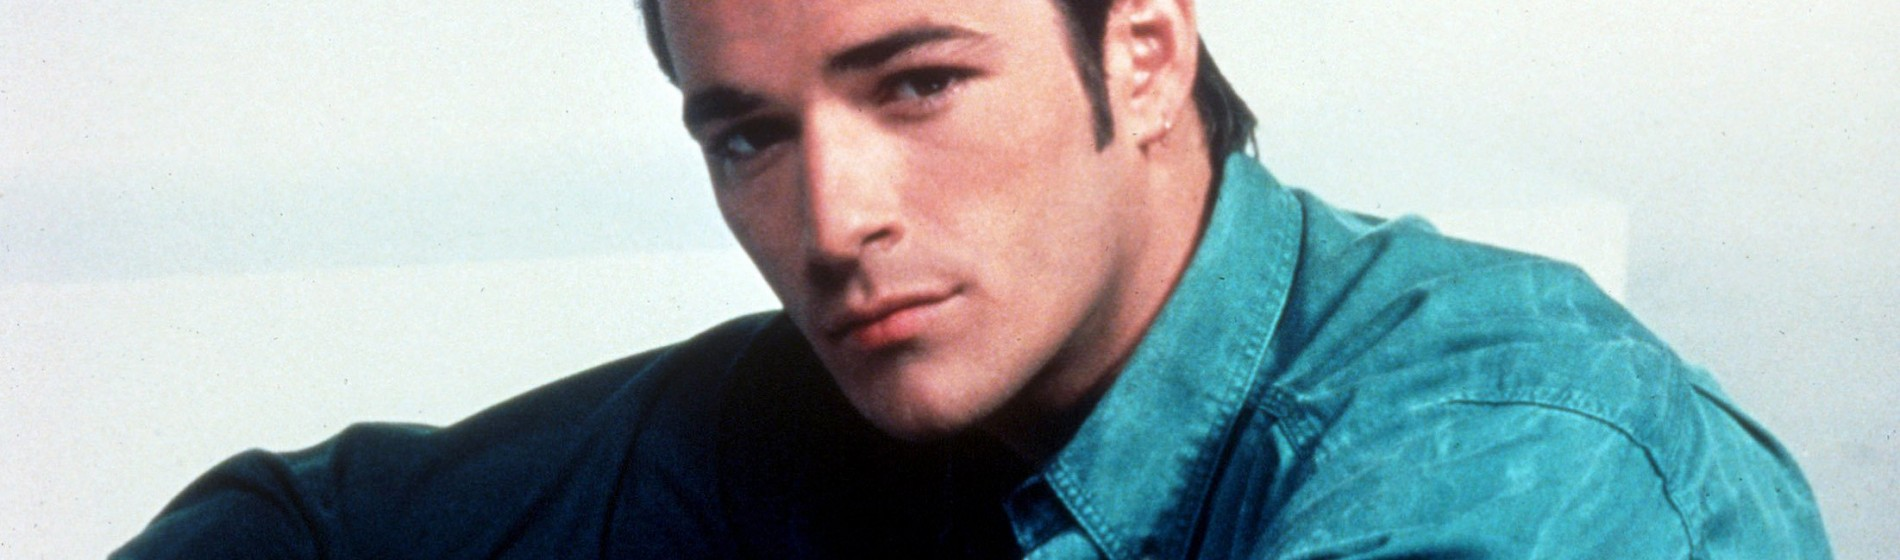 Luke Perry obituary